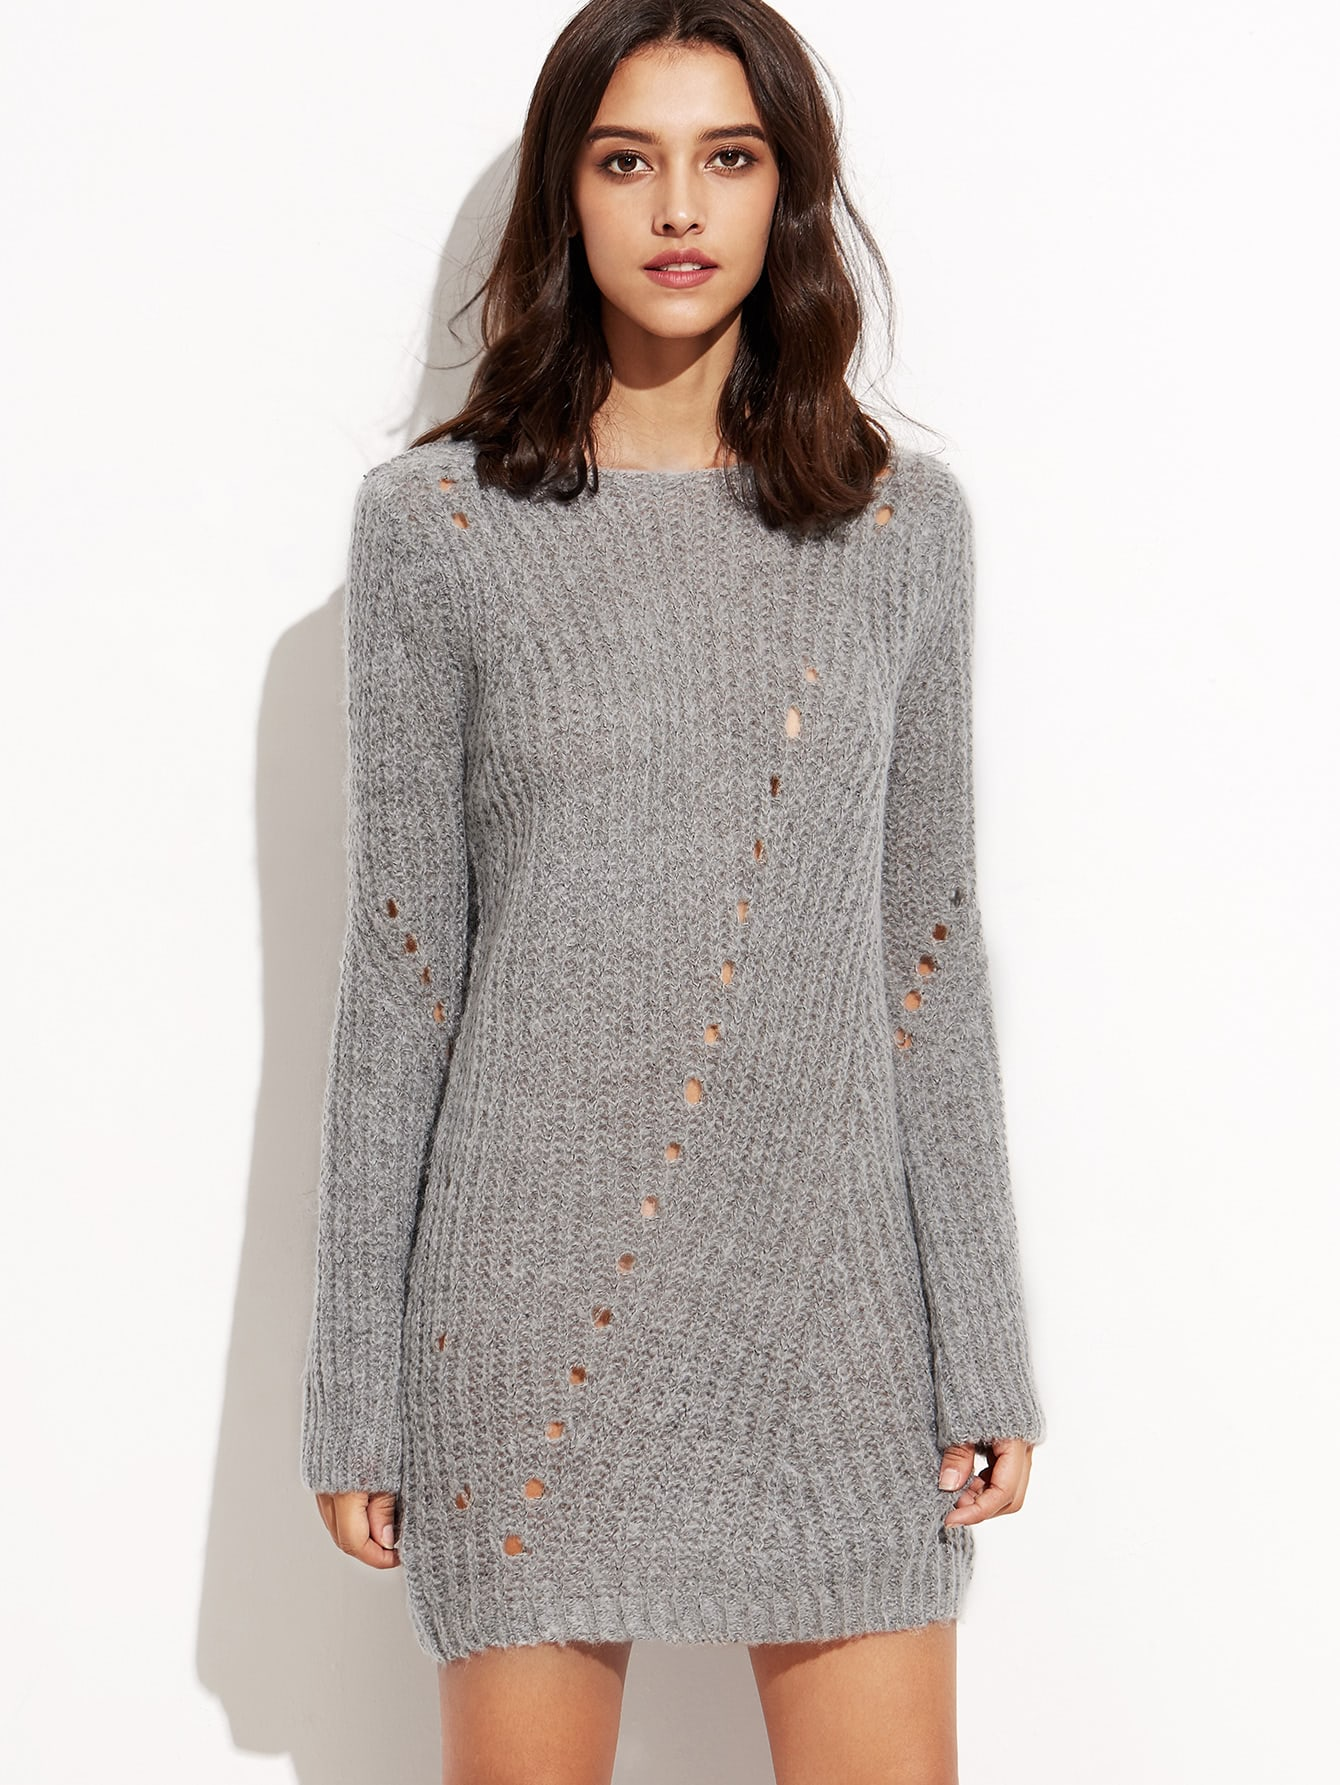 Grey Long Sleeve Eyelet Sweater Dress